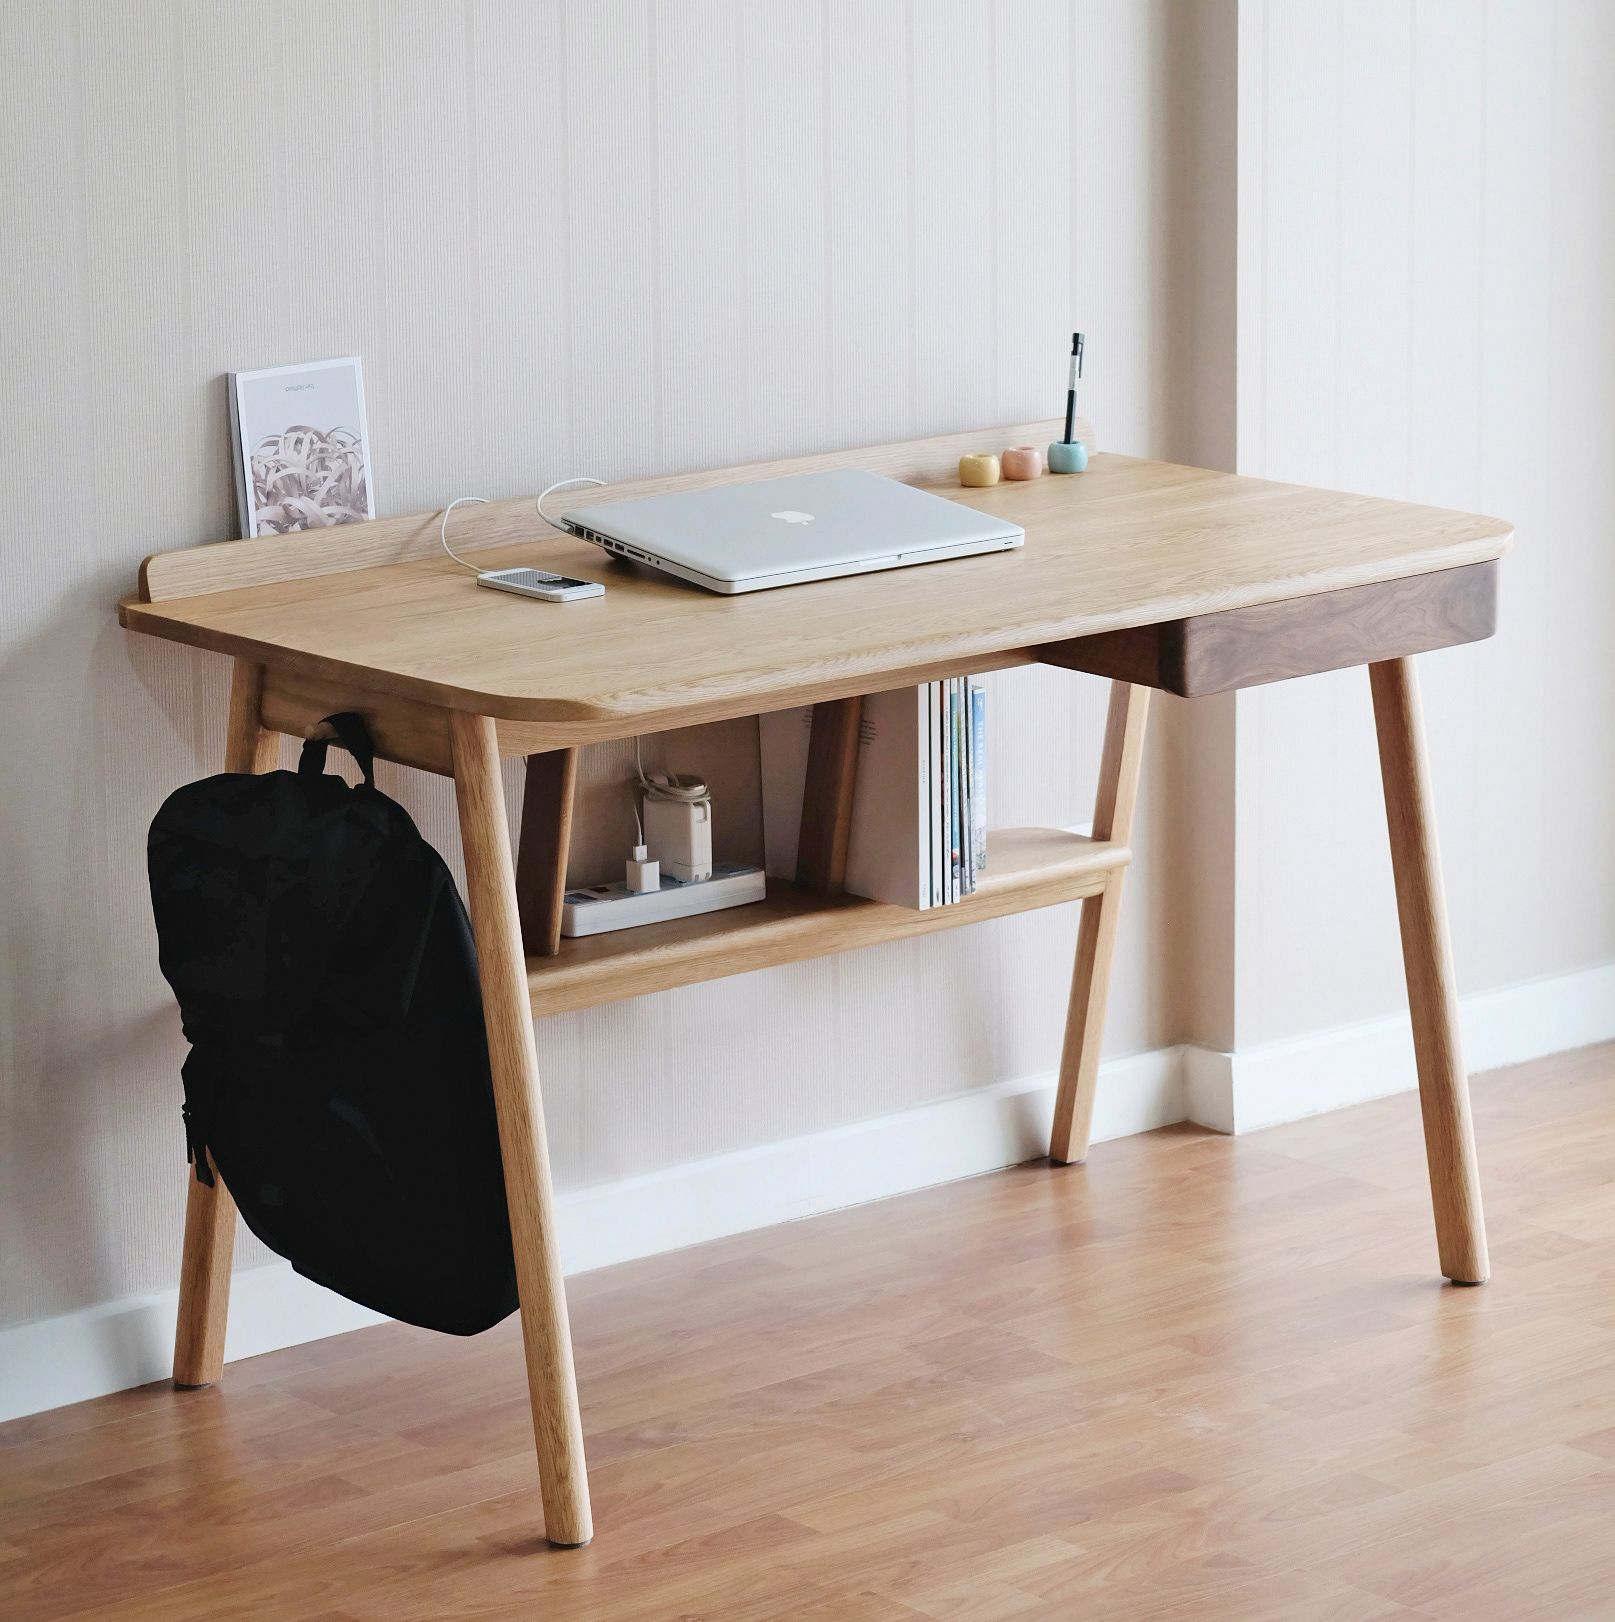 Creative solid wood home office furniture for urban living.   Home ...